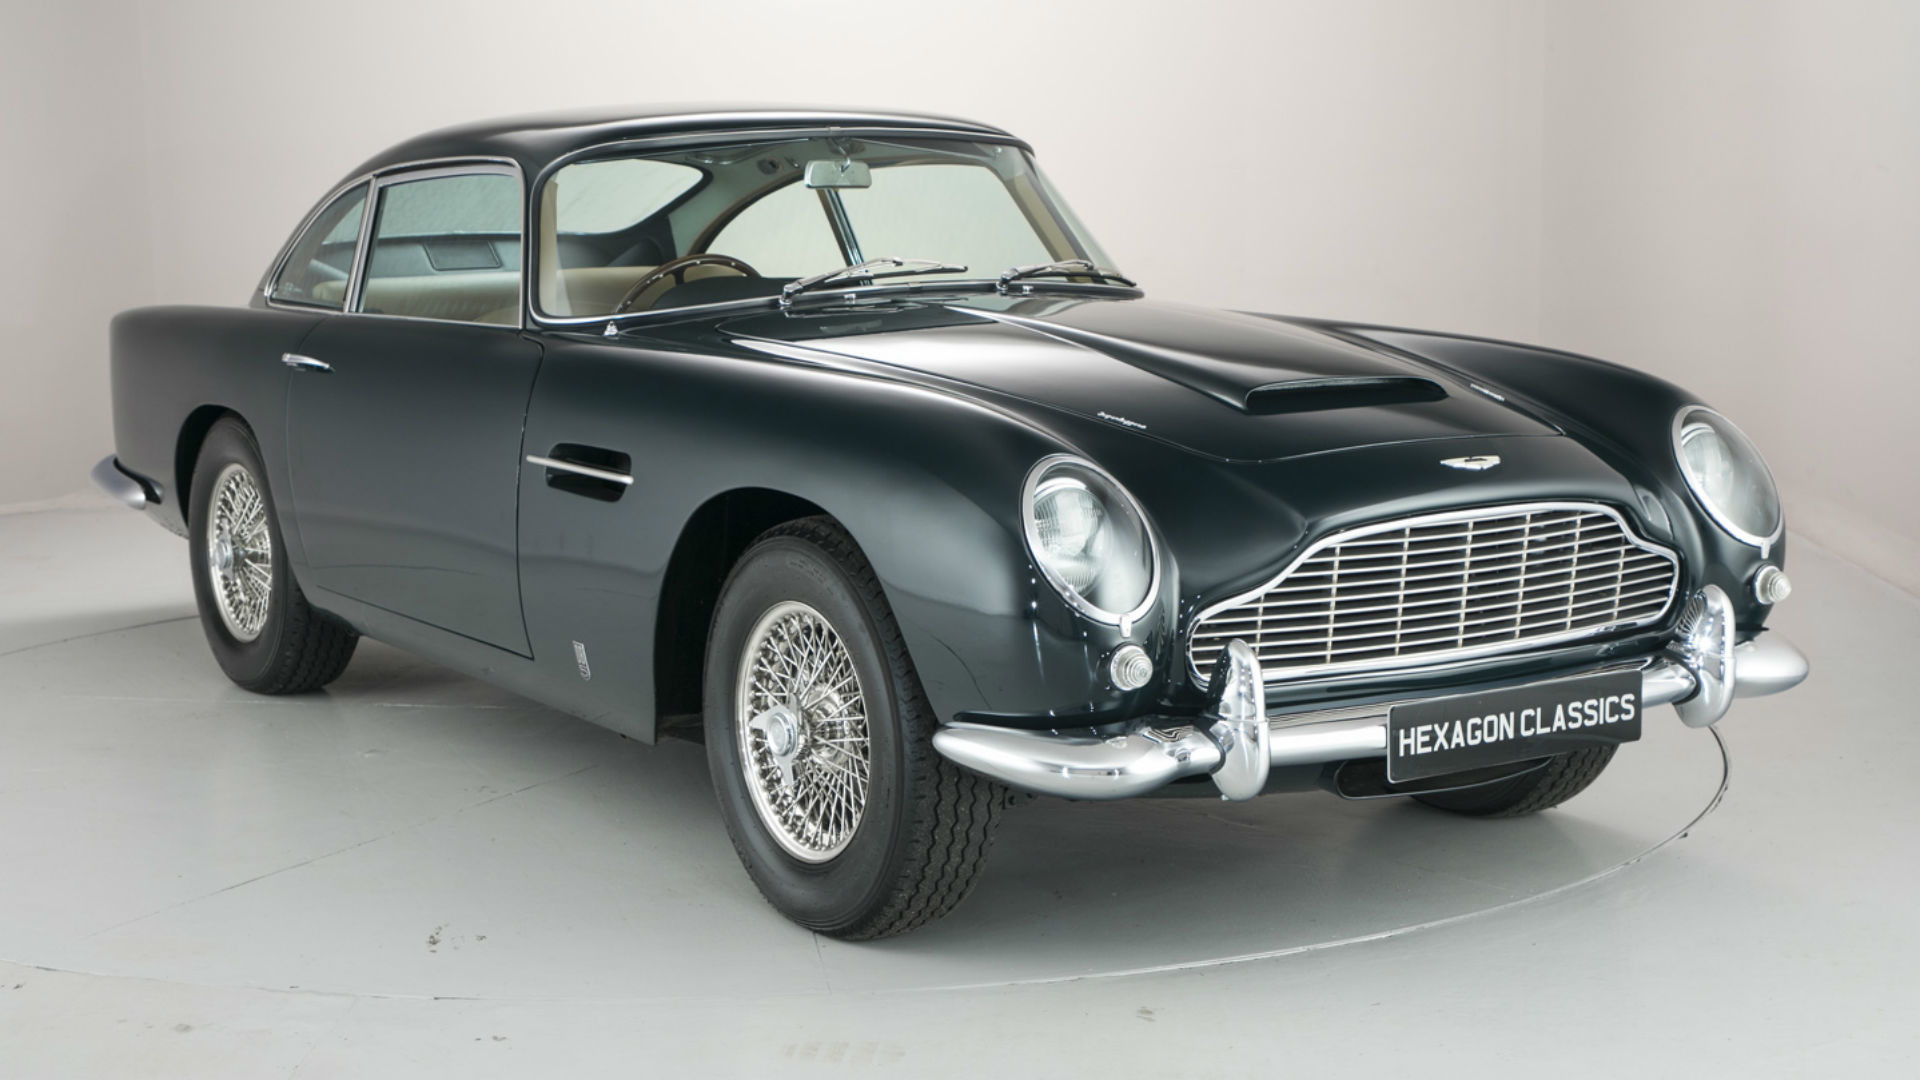 Rare Aston Martin Owned By Persian Prince Up For Sale With £800k